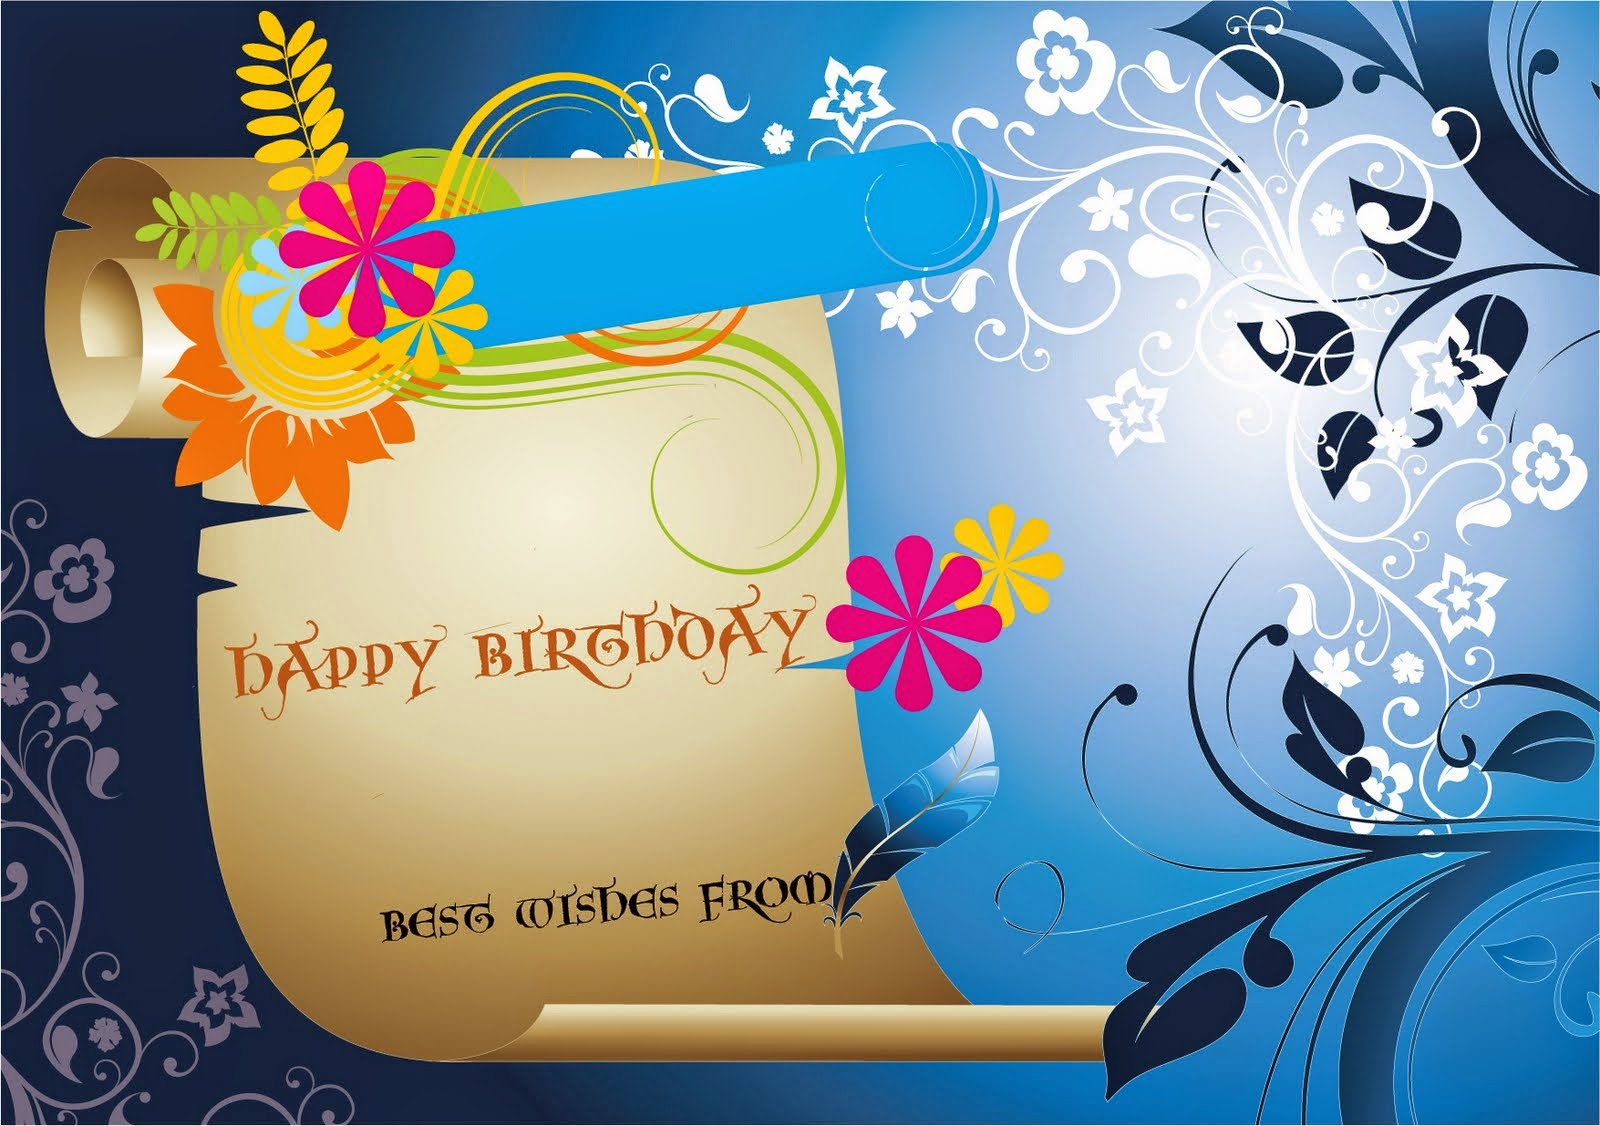 Free Birthday Cards Online gangcraftnet – Birthday Cards Online for Free